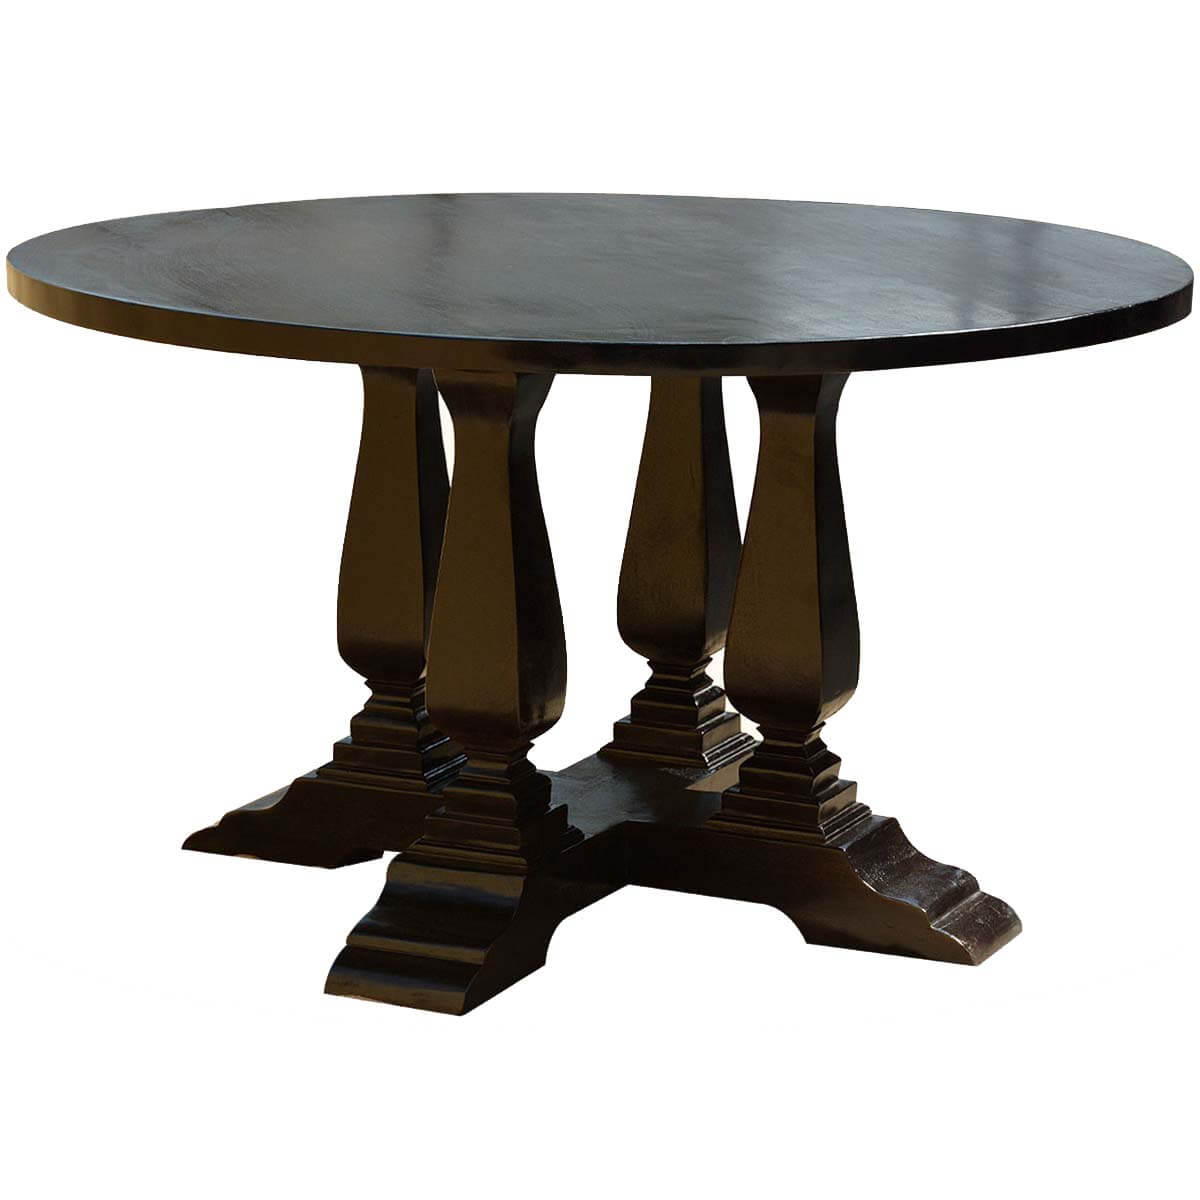 Black solid wood cruciform base baluster sutton 60 round for Solid wood round dining room table